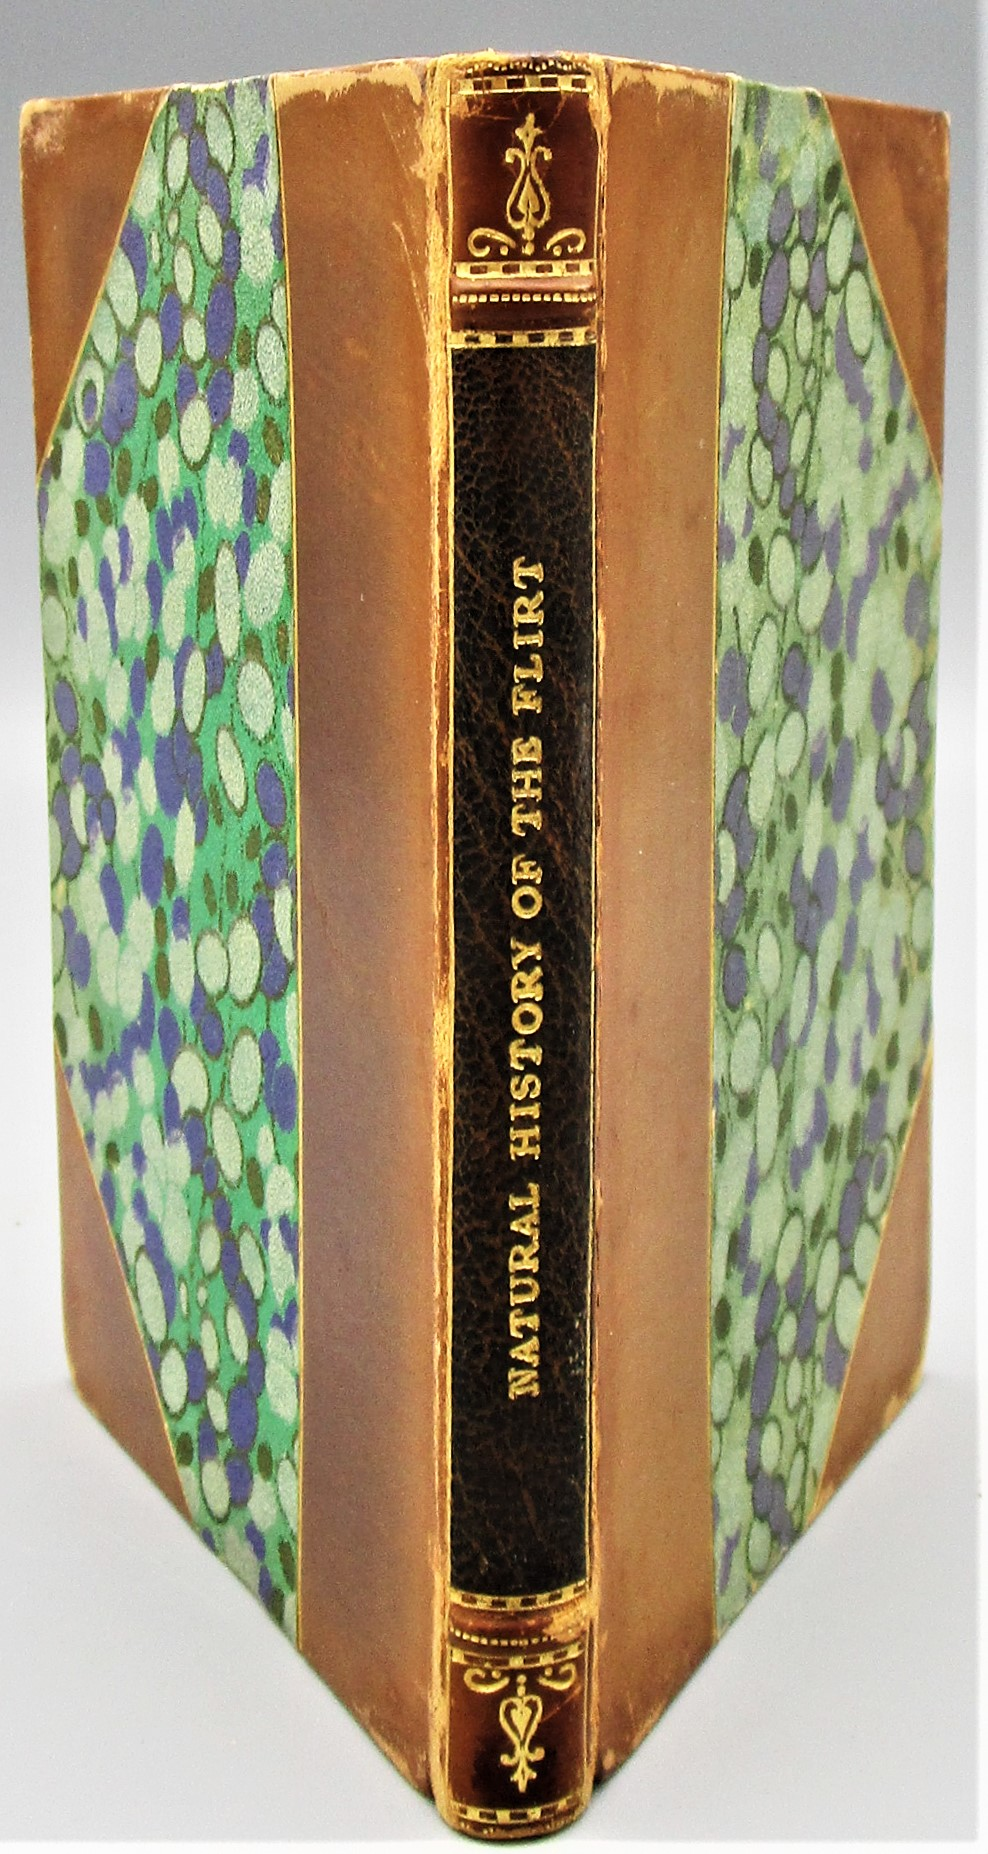 NATURAL HISTORY OF THE FLIRT, by Albert Smith - 1848 [1st Ed]